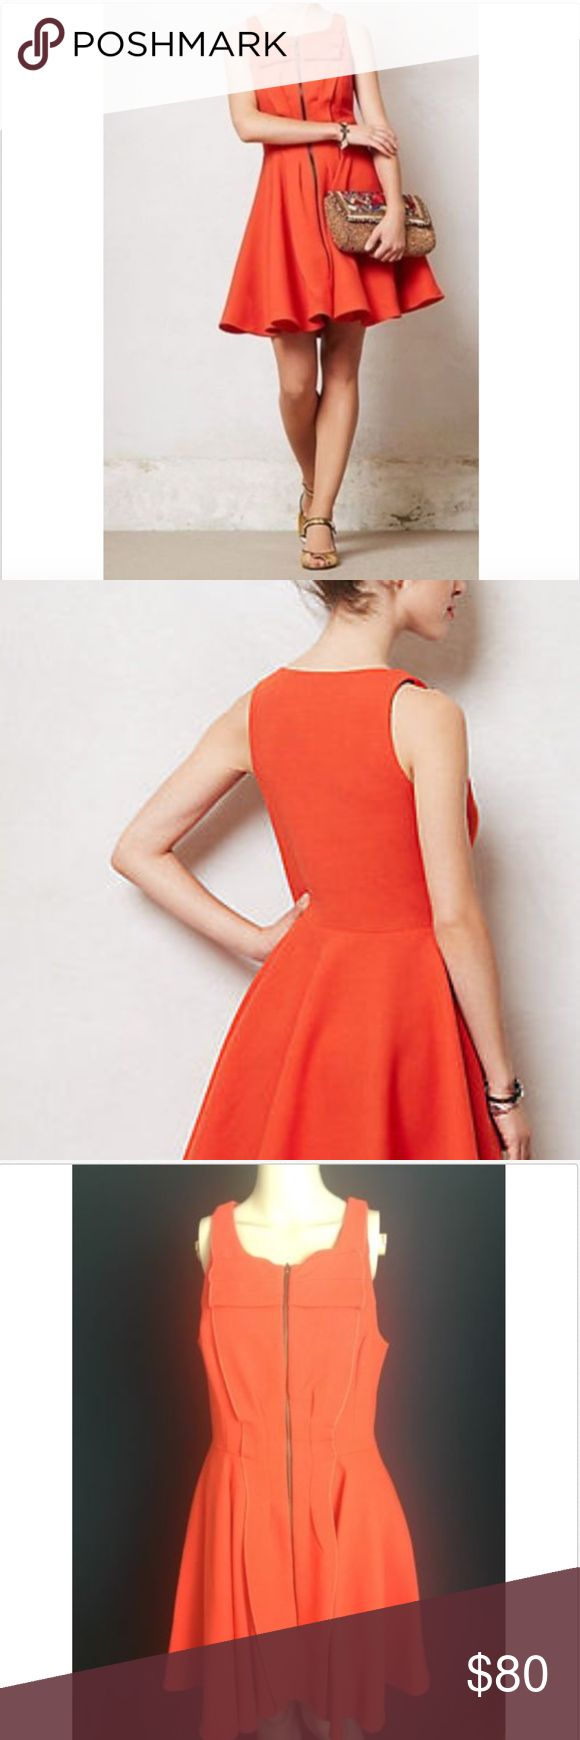 Anthropologie Poppy Petite Dress By Eva Franco Anthropologie Poppy Petite Dress By Eva Franco Orange Red. New With Tag  SIZE:10P  ATTENTION: Color might have slight variances between the real product and the image show in the listin Anthropologie Dresses